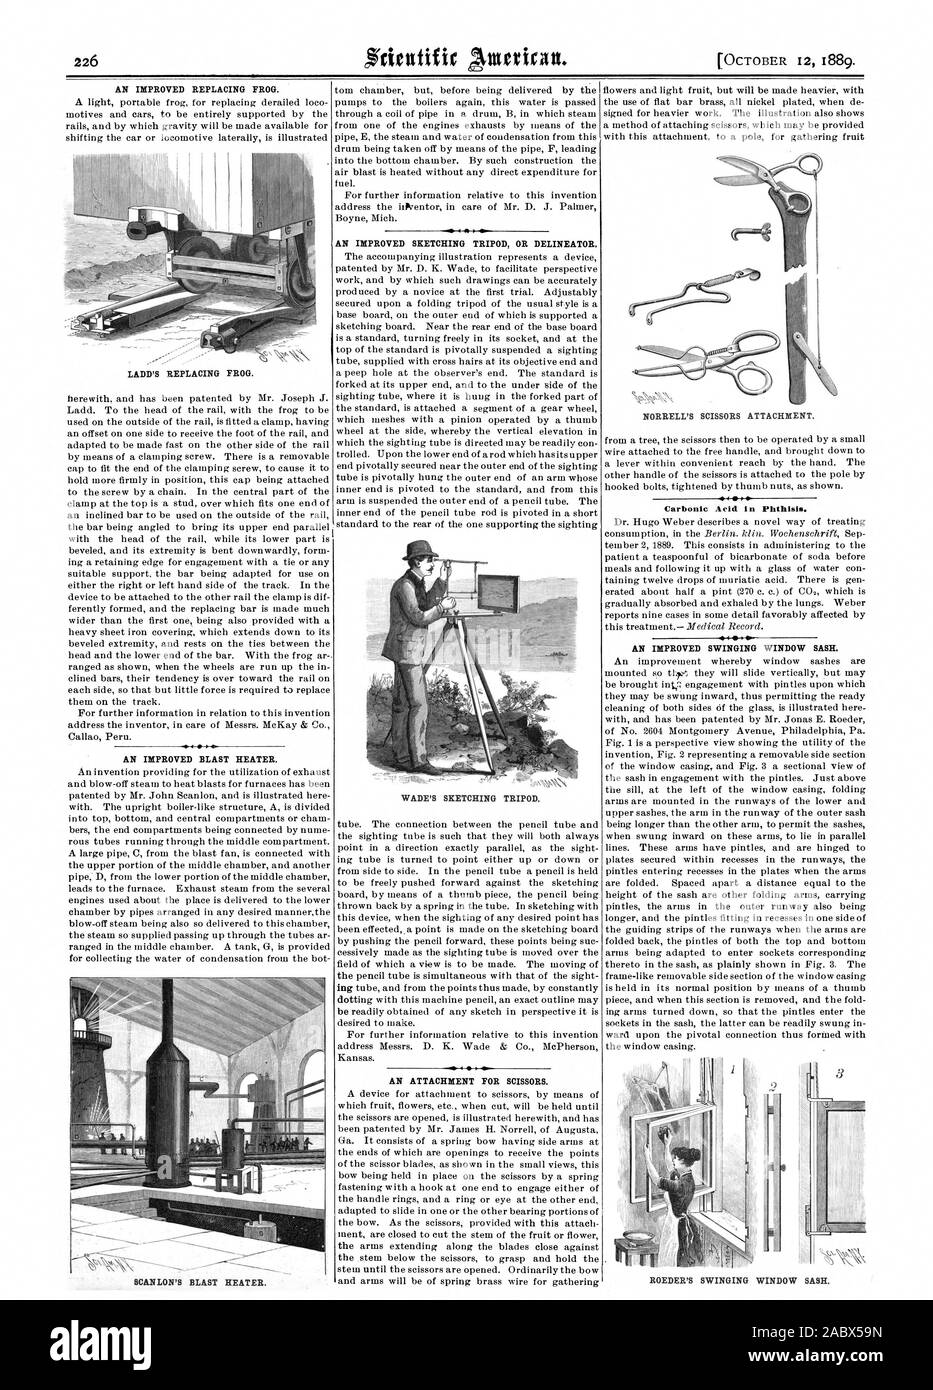 AN IMPROVED REPLACING FROG. AN IMPROVED BLAST HEATER. SCANLON'S BLAST HEATER. AN IMPROVED SKETCHING TRIPOD OR DELINEATOR. WADE'S SKETCHING TRIPOD. AN ATTACHMENT FOR SCISSORS. NORRELL'S SCISSORS ATTACHMENT. Carbonic Acid in Phthisis. AN IMPROVED SWINGING WINDOW SASH. LADD'S REPLACING FROG. ROEDER'S SWINGING WINDOW SASH., scientific american, 1889-10-12 Stock Photo